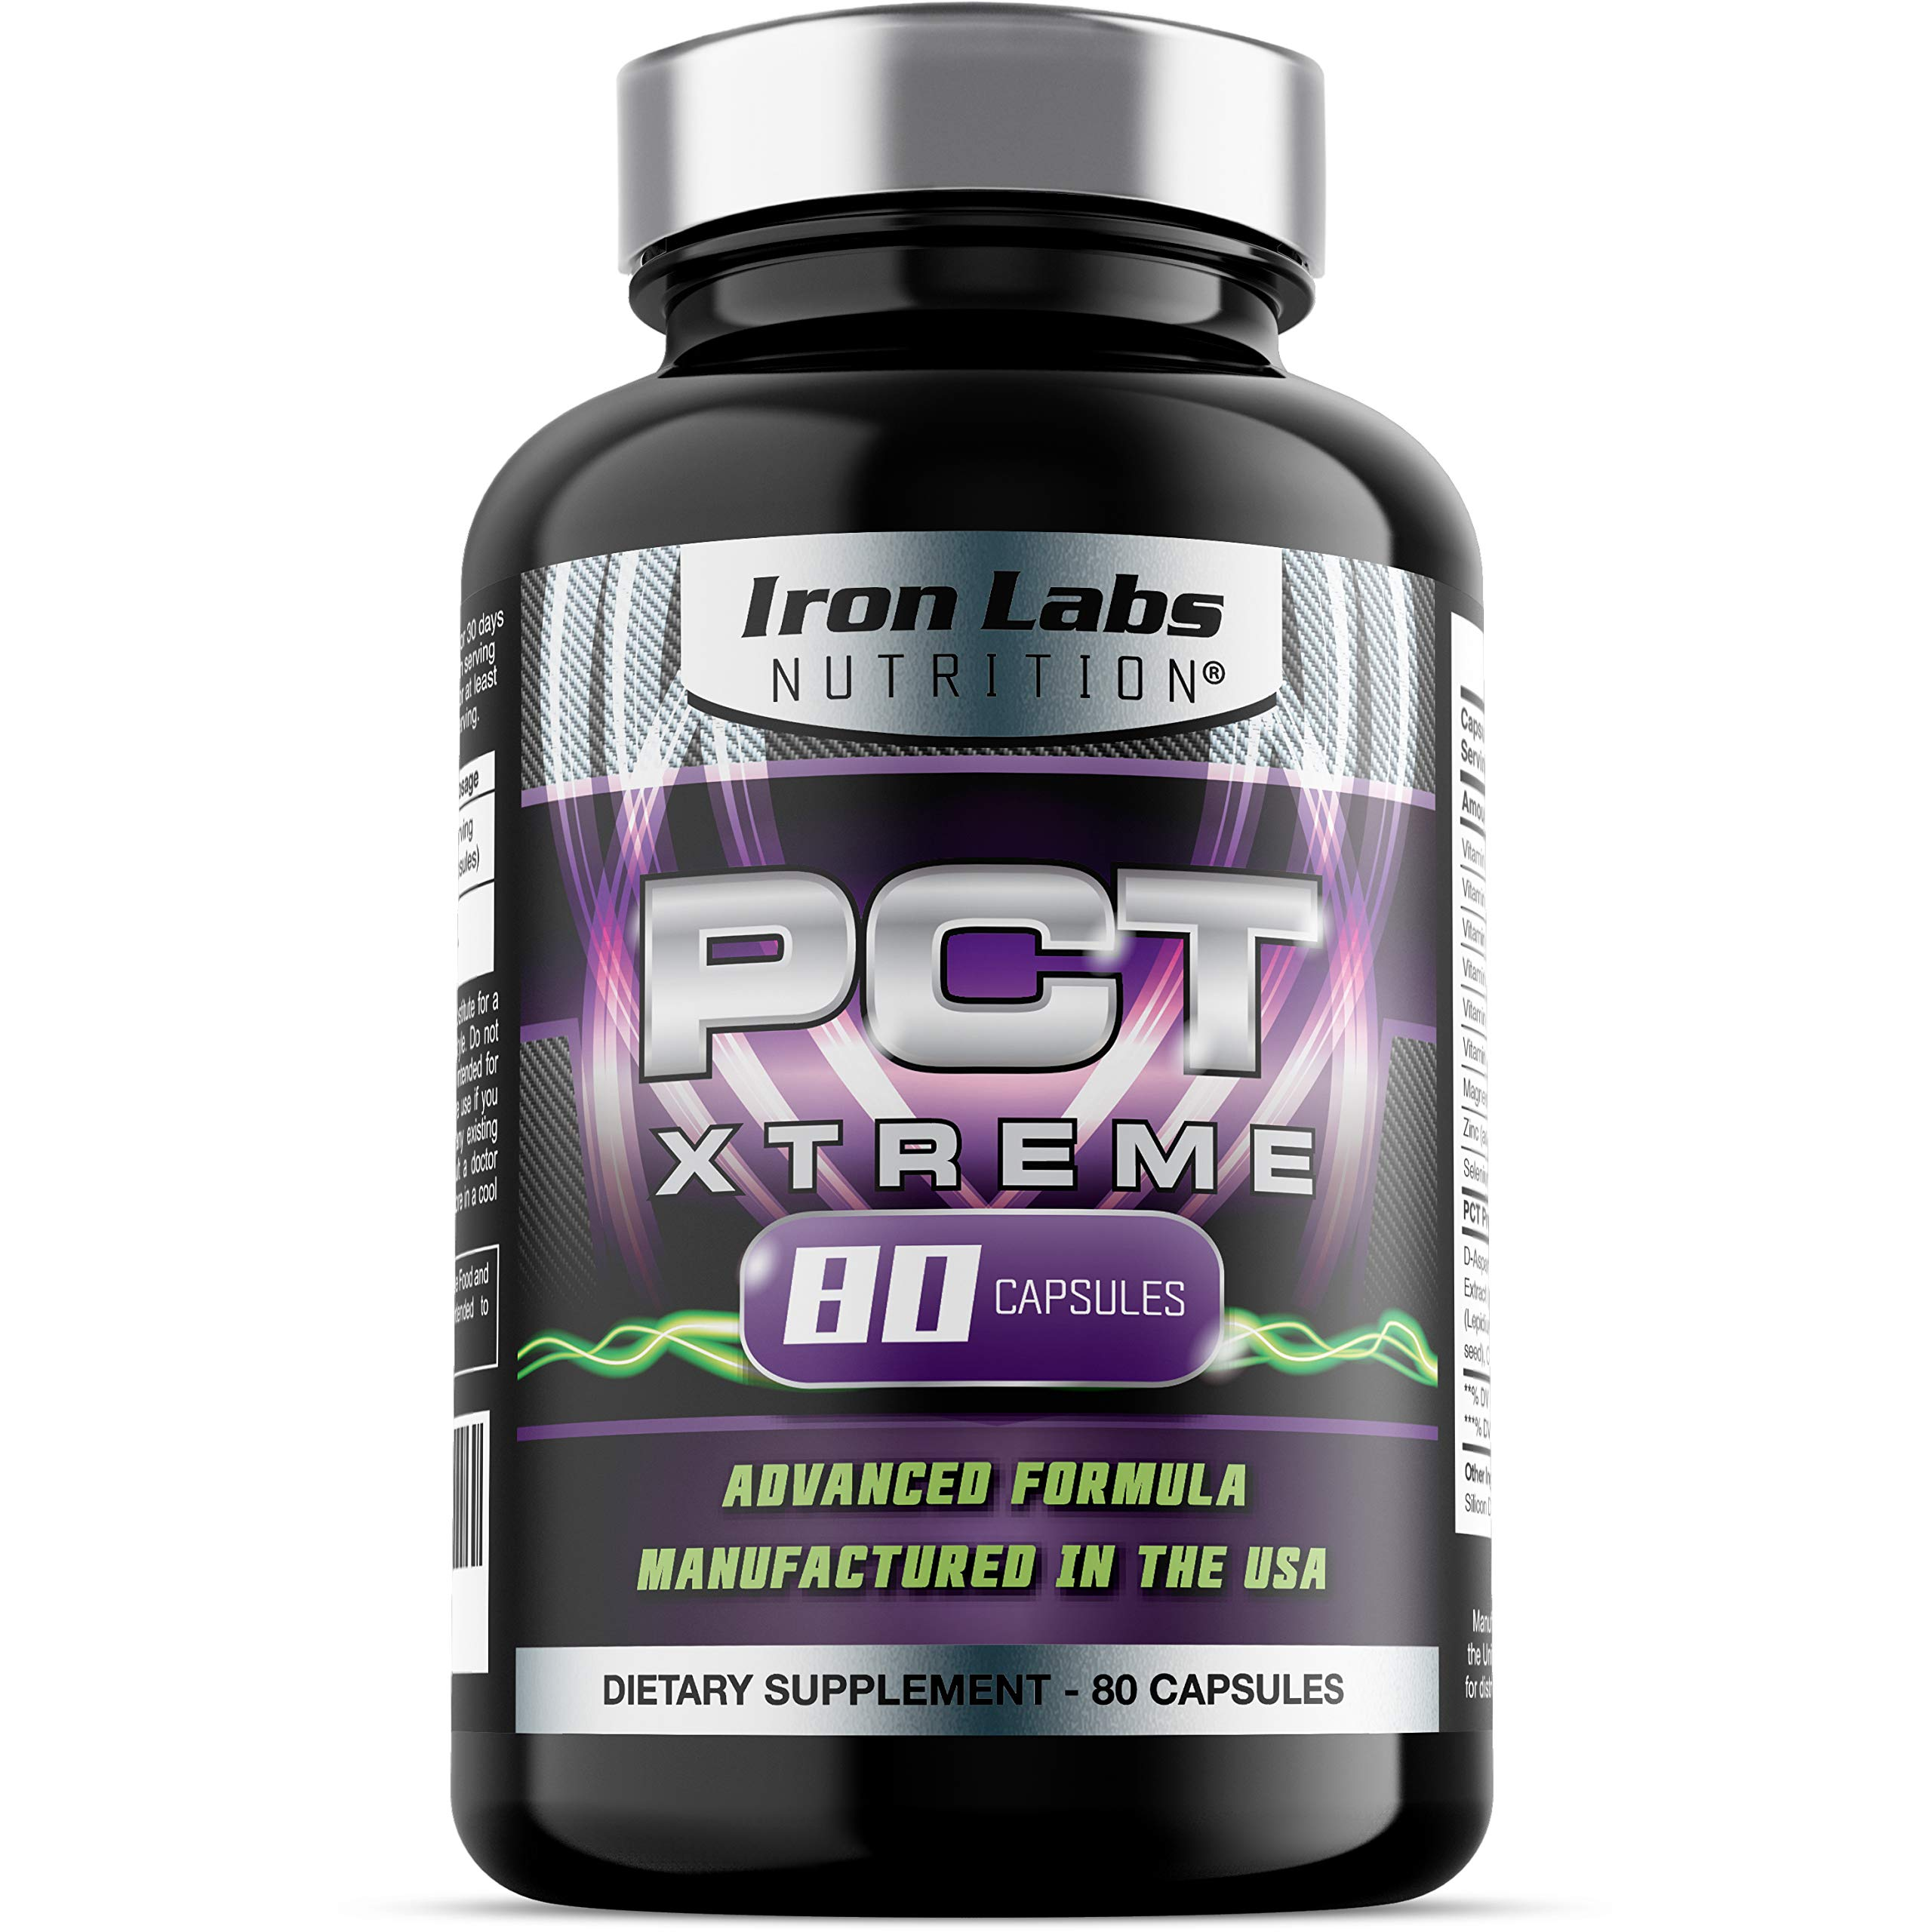 PCT Xtreme | 80 Capsules | Post Cycle Support & Natural Testosterone Booster | with an Exclusive Advanced Formula by Iron Labs Nutrition